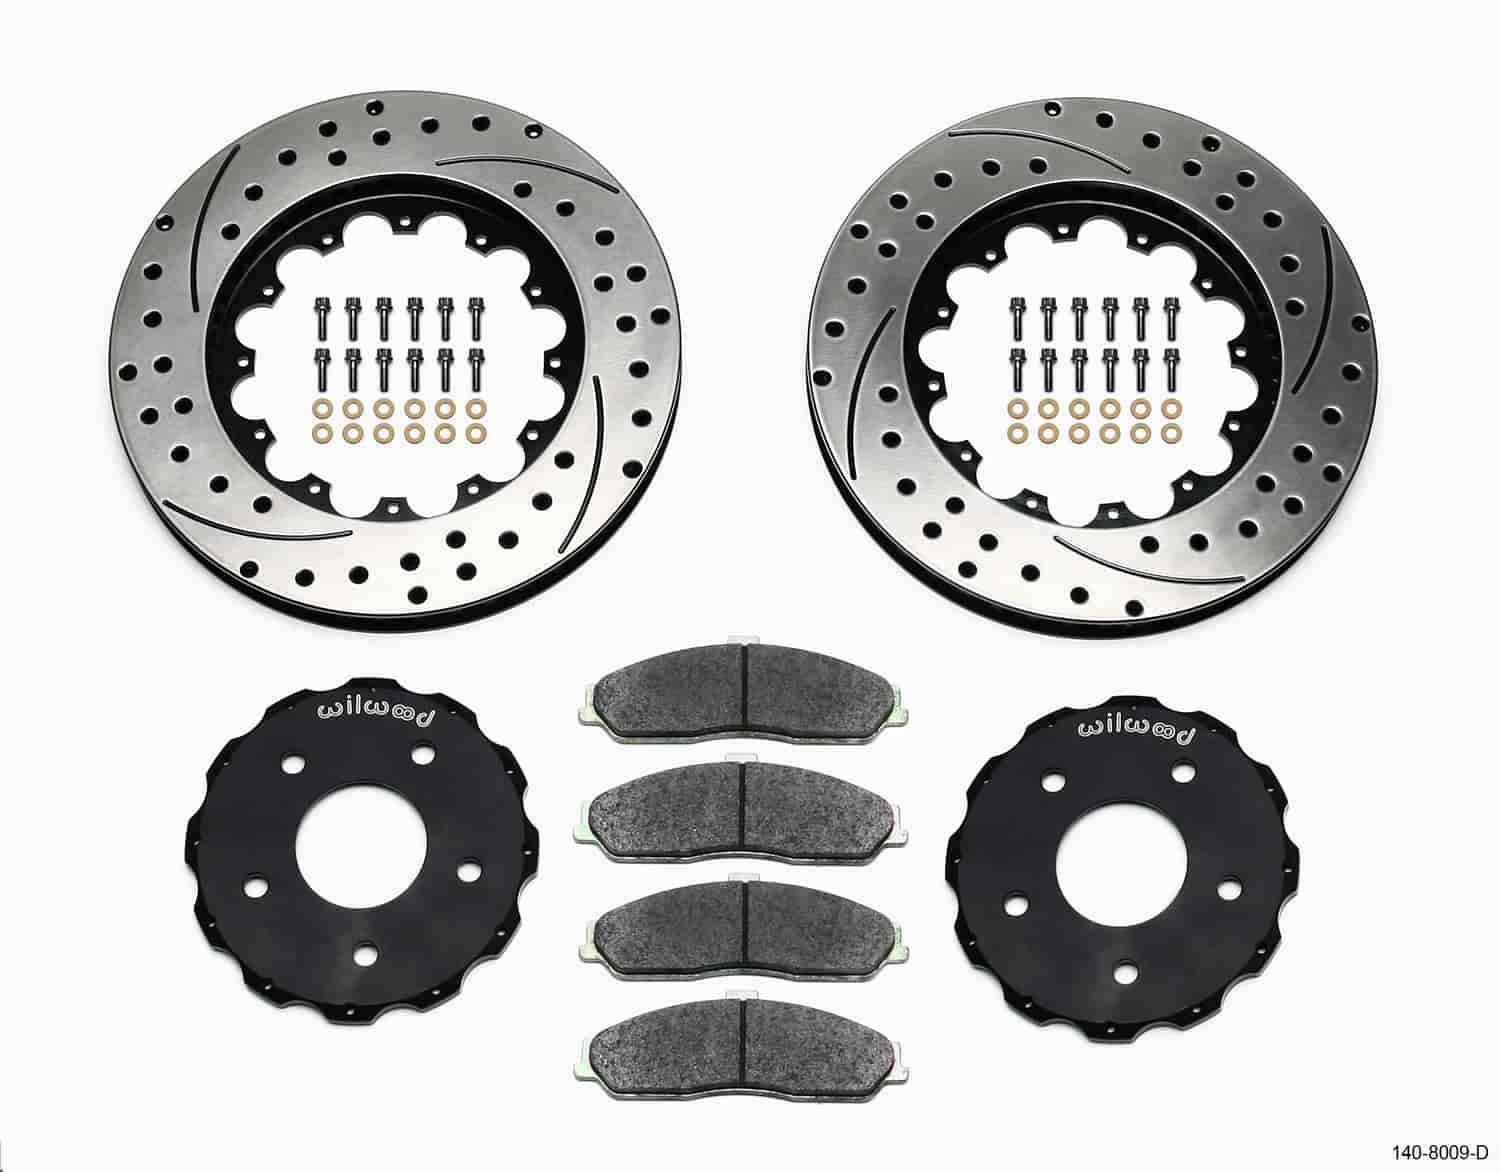 Wilwood 140-8443-D - Wilwood ProMatrix Brake Rotor Upgrade Kits